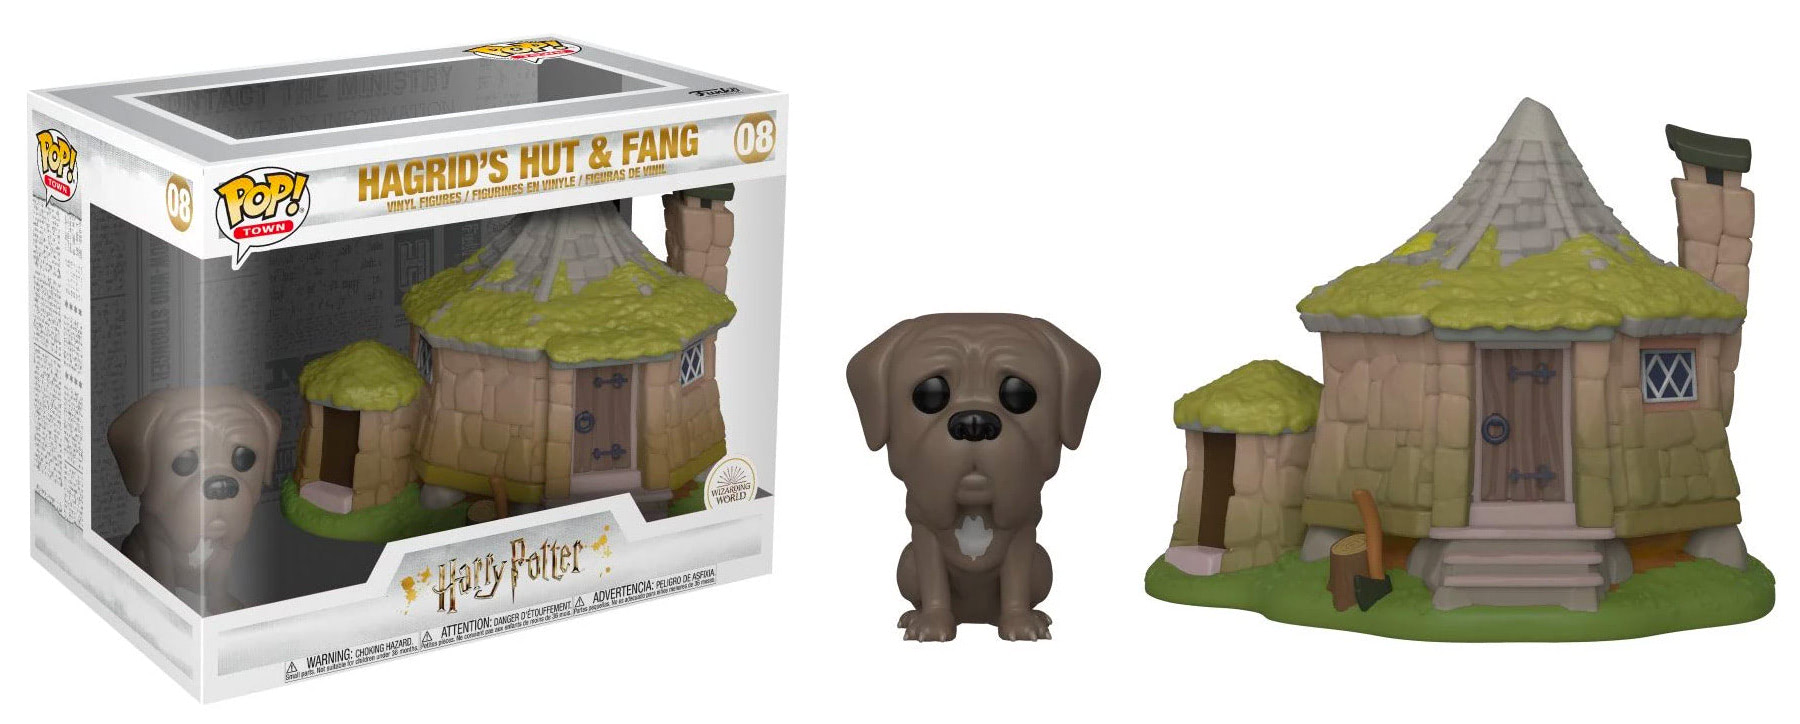 Hagrid's Hut & Fang Pop! Town